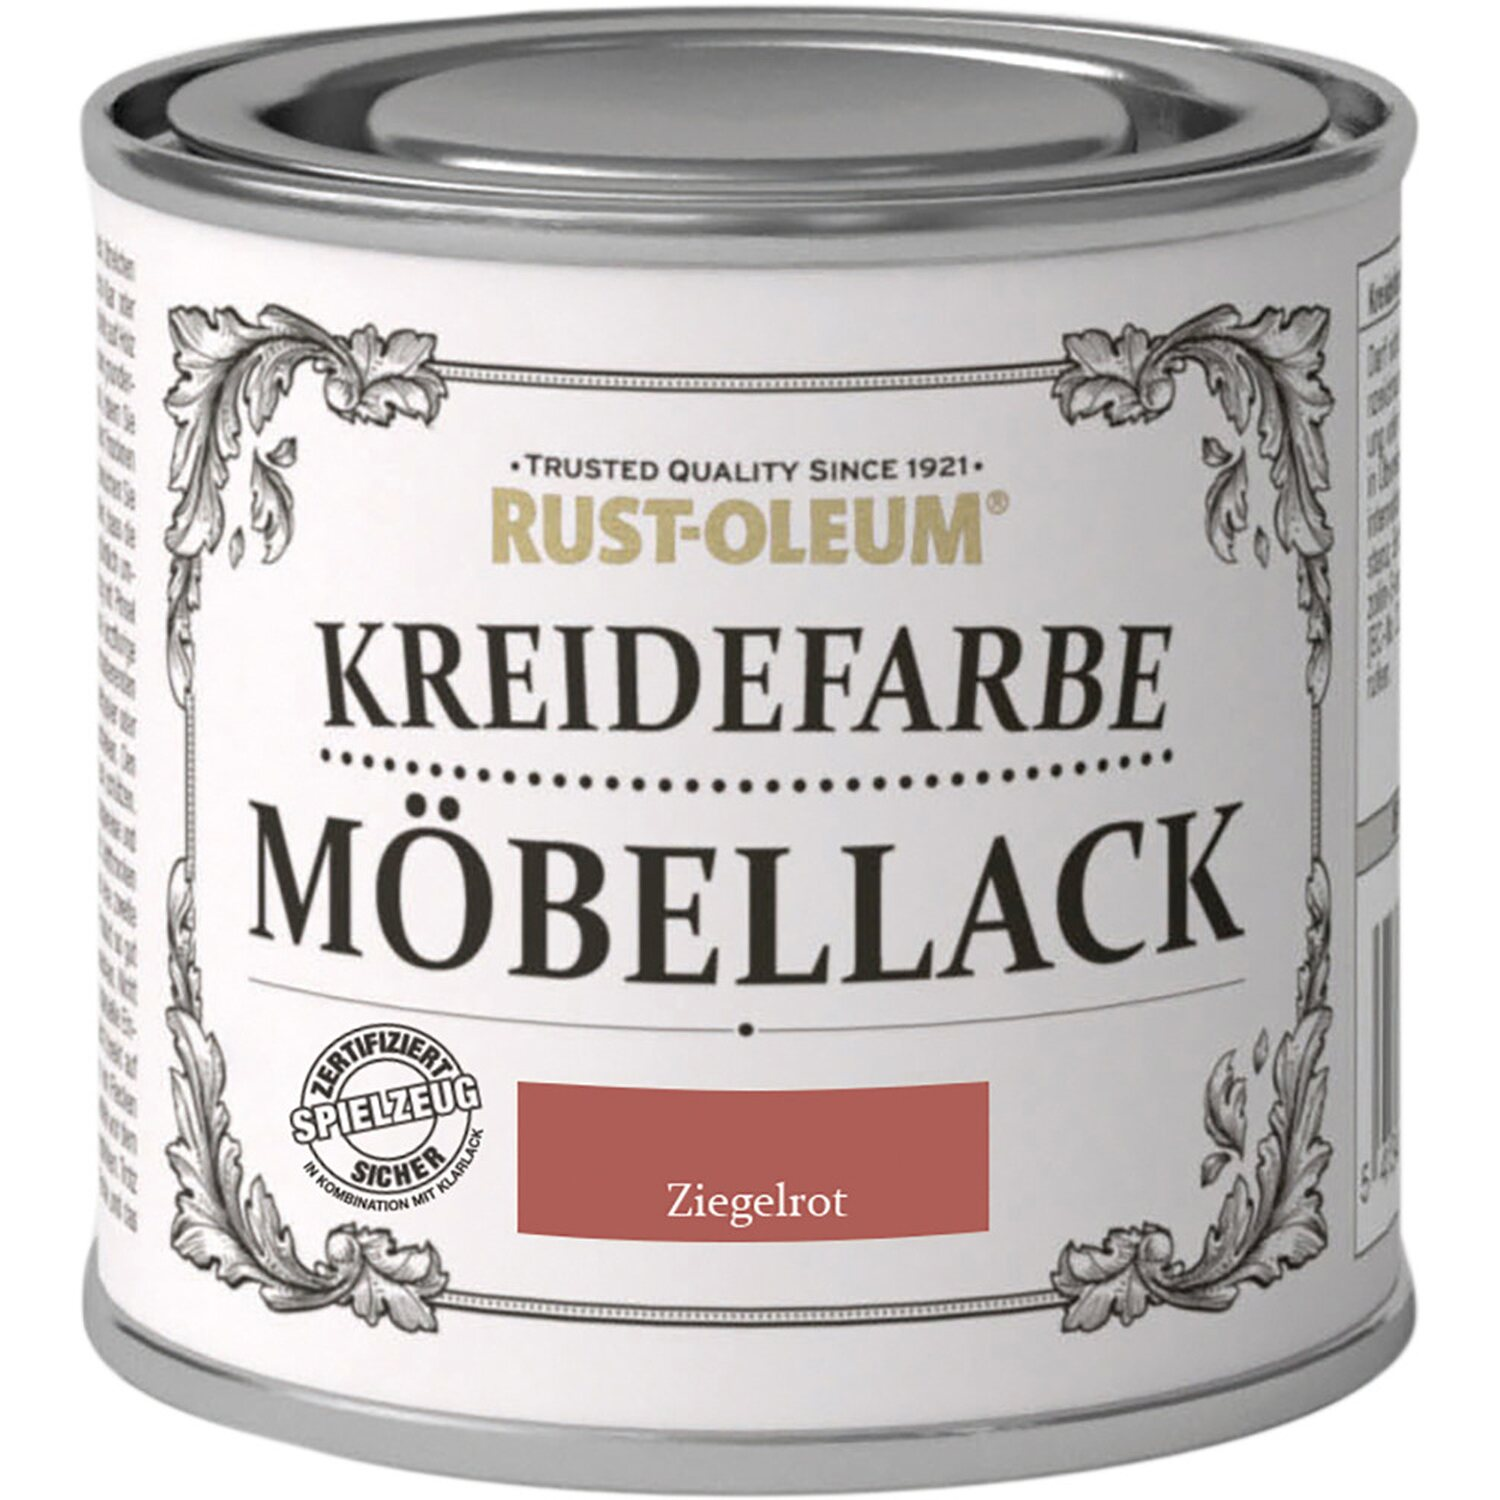 rust oleum m bellack kreidefarbe ziegelrot matt 125 ml kaufen bei obi. Black Bedroom Furniture Sets. Home Design Ideas